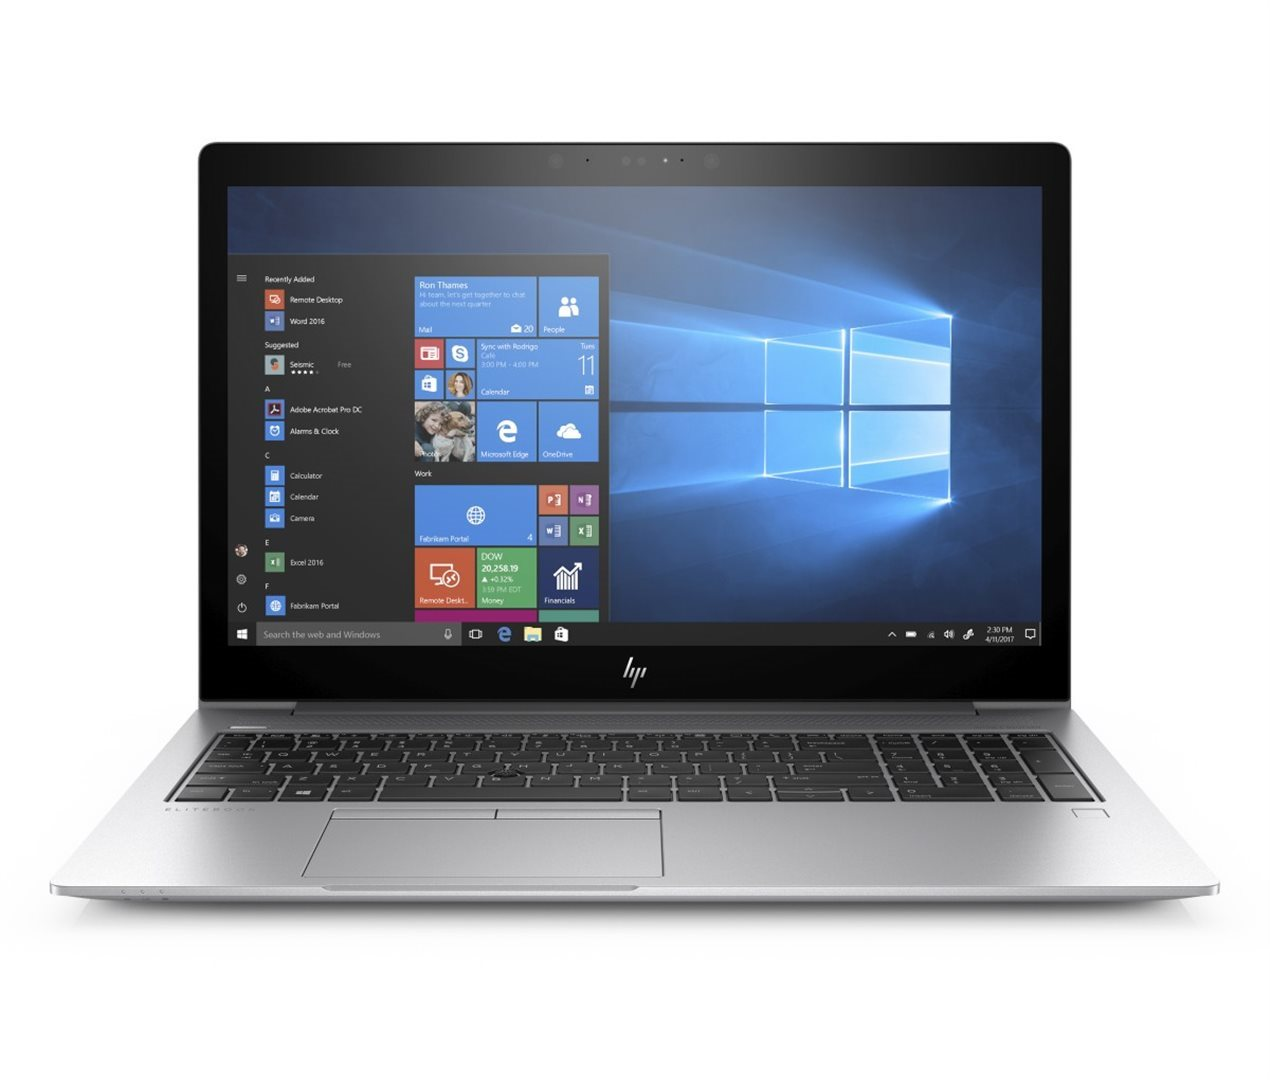 HP EliteBook 850 G5 i5-8250U/8GB/256GB SSD/15,6'' FHD/backlit keyb/Win 10 Pro